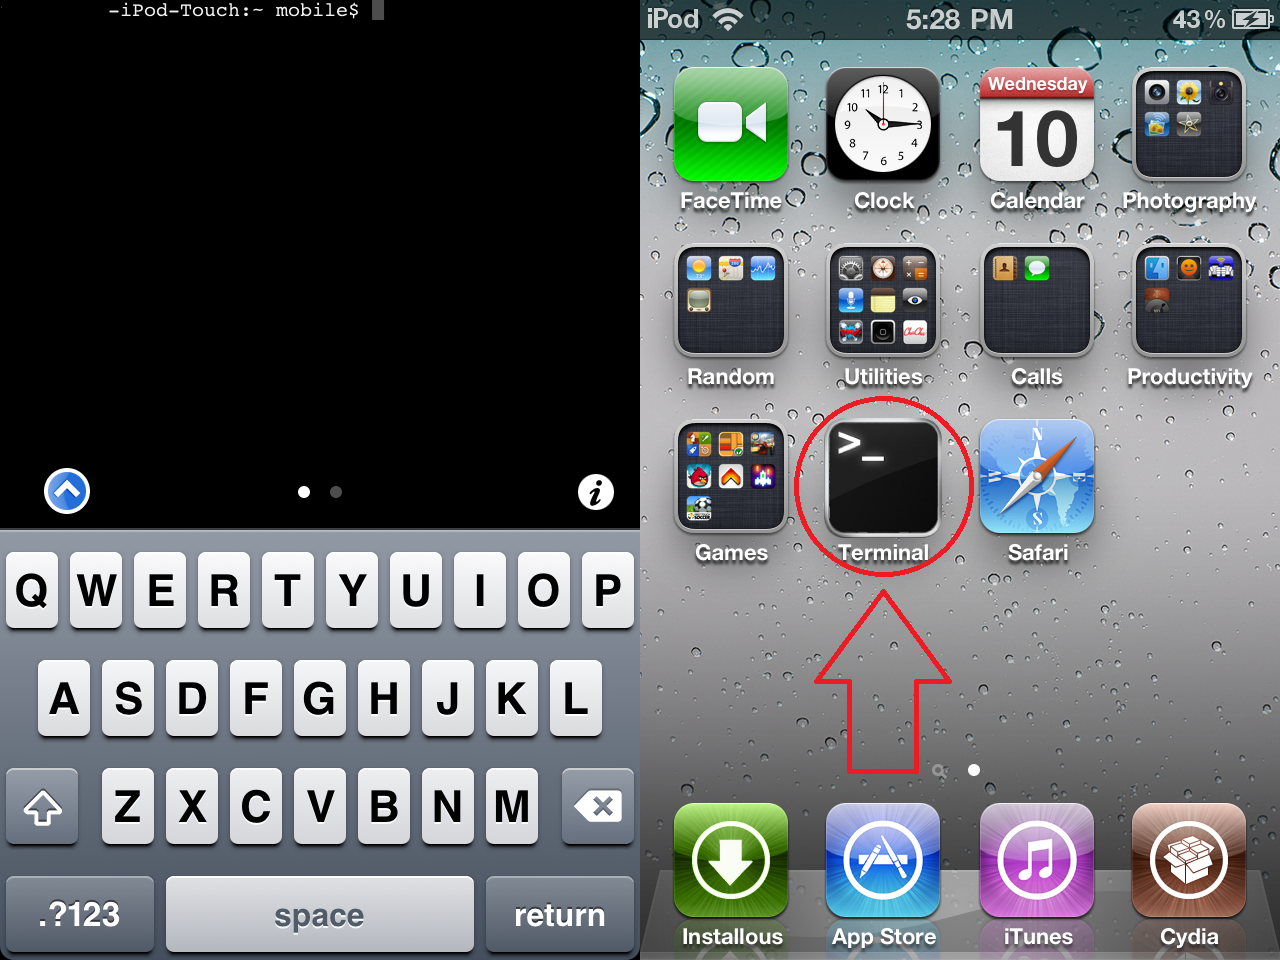 Mobile Terminal for iOS 4+ by scritperkid2 on DeviantArt